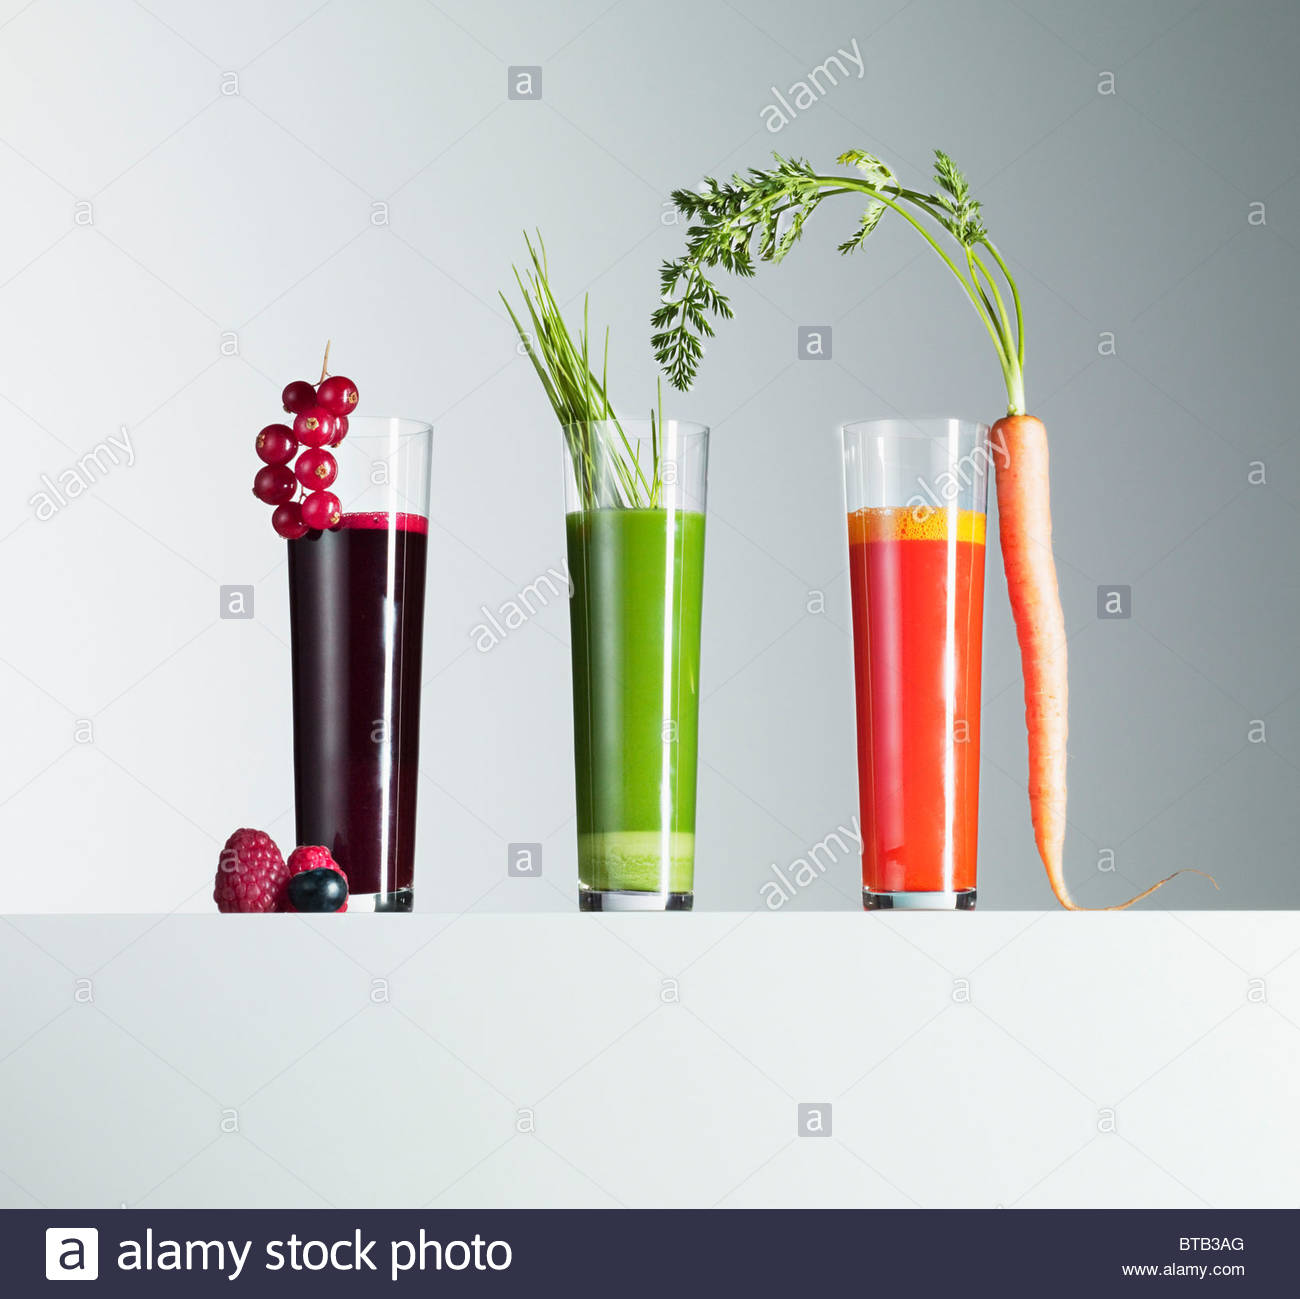 Variety of fruit and vegetable juices - Stock Image